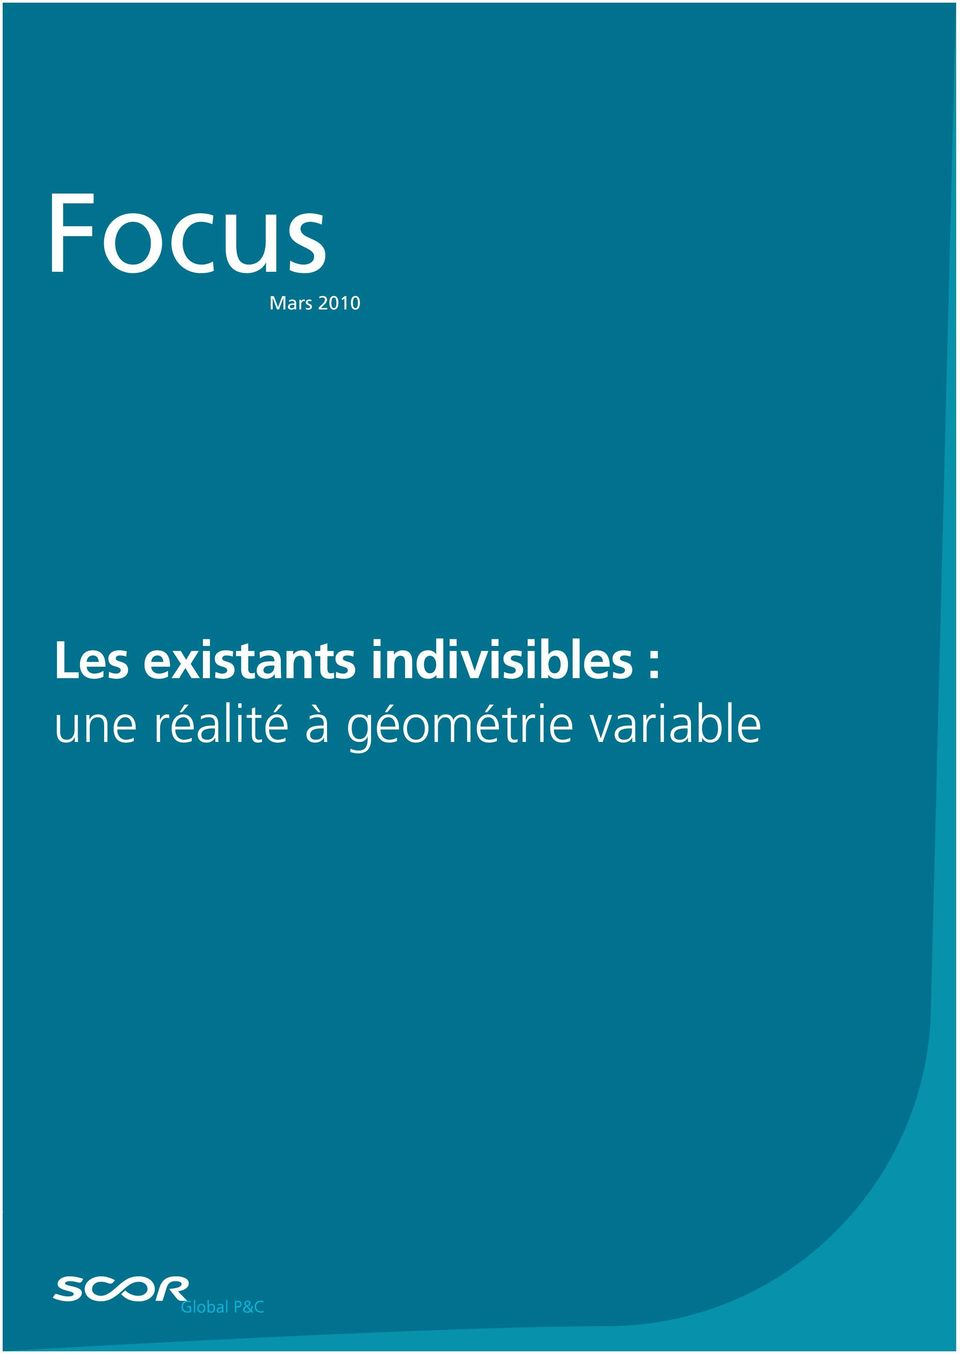 indivisibles : une